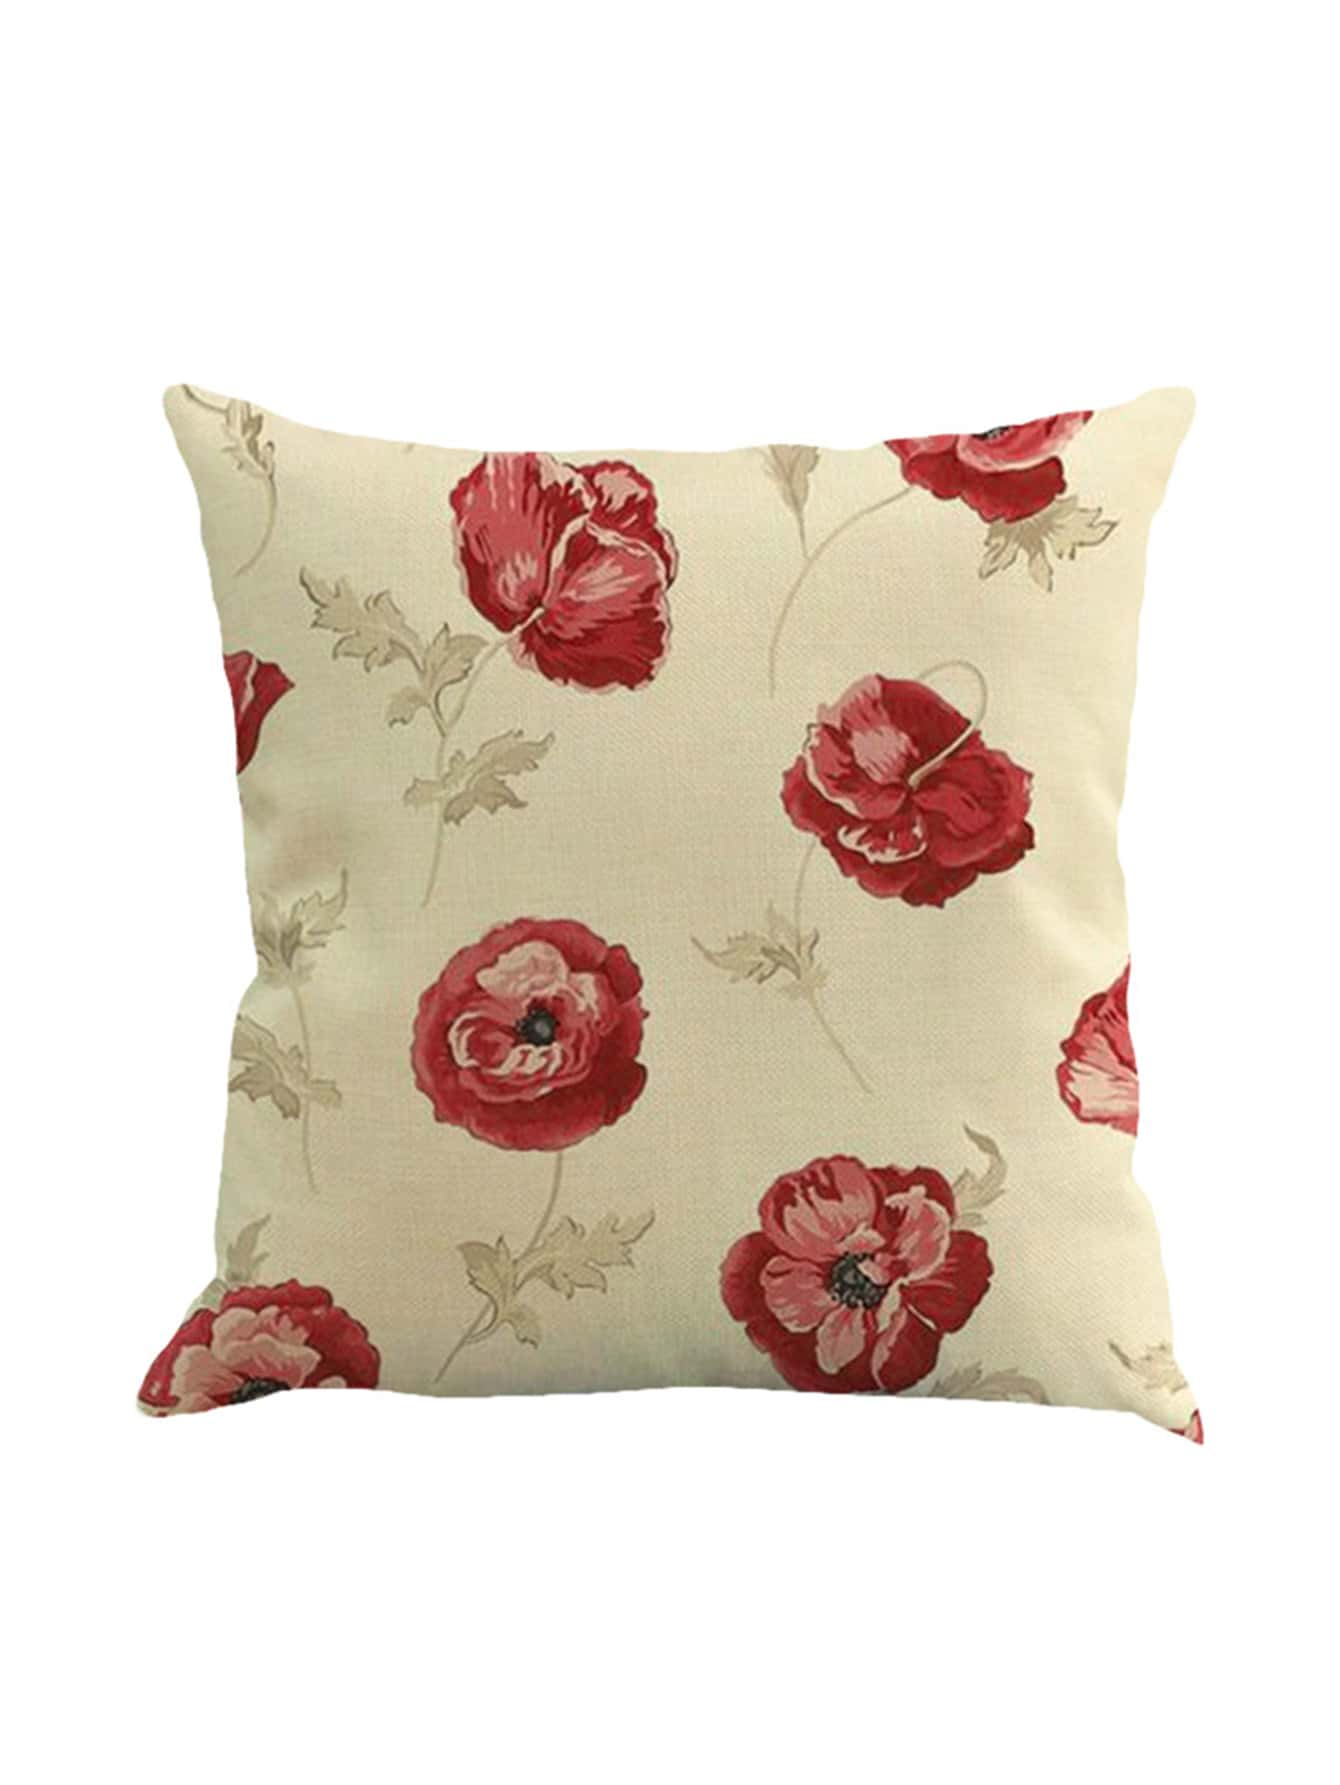 Contrast Flower Print Pillowcase Cover